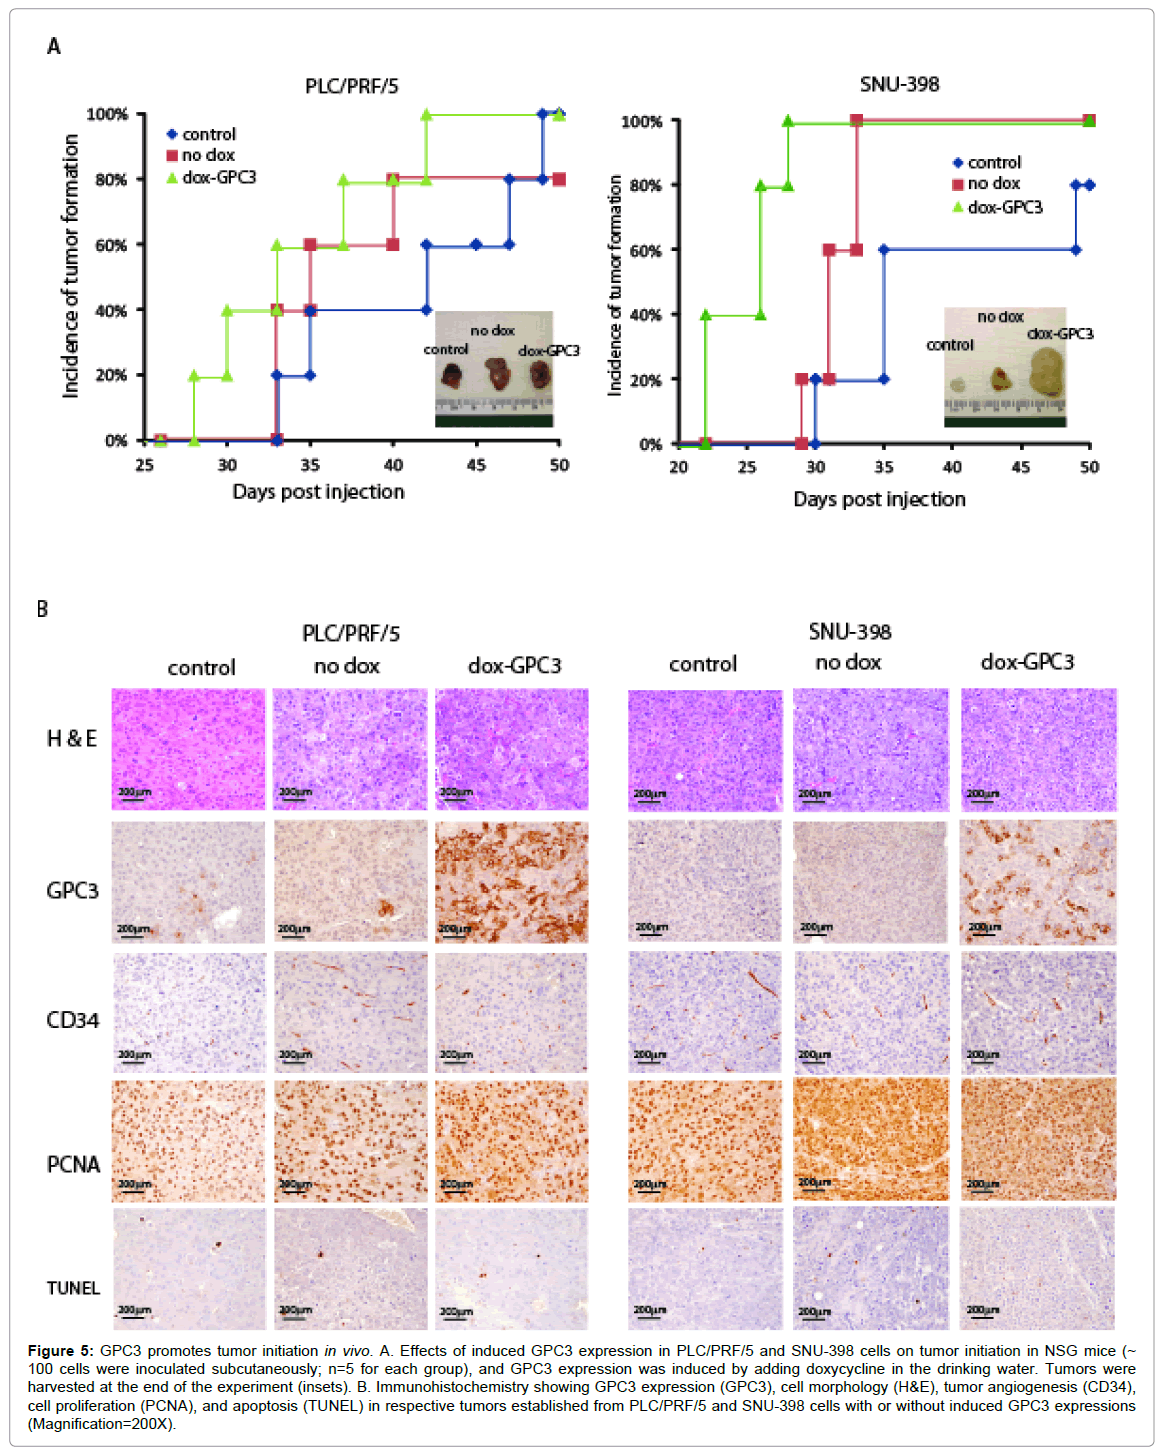 stem-cell-research-therapy-GPC3-promotes-tumor